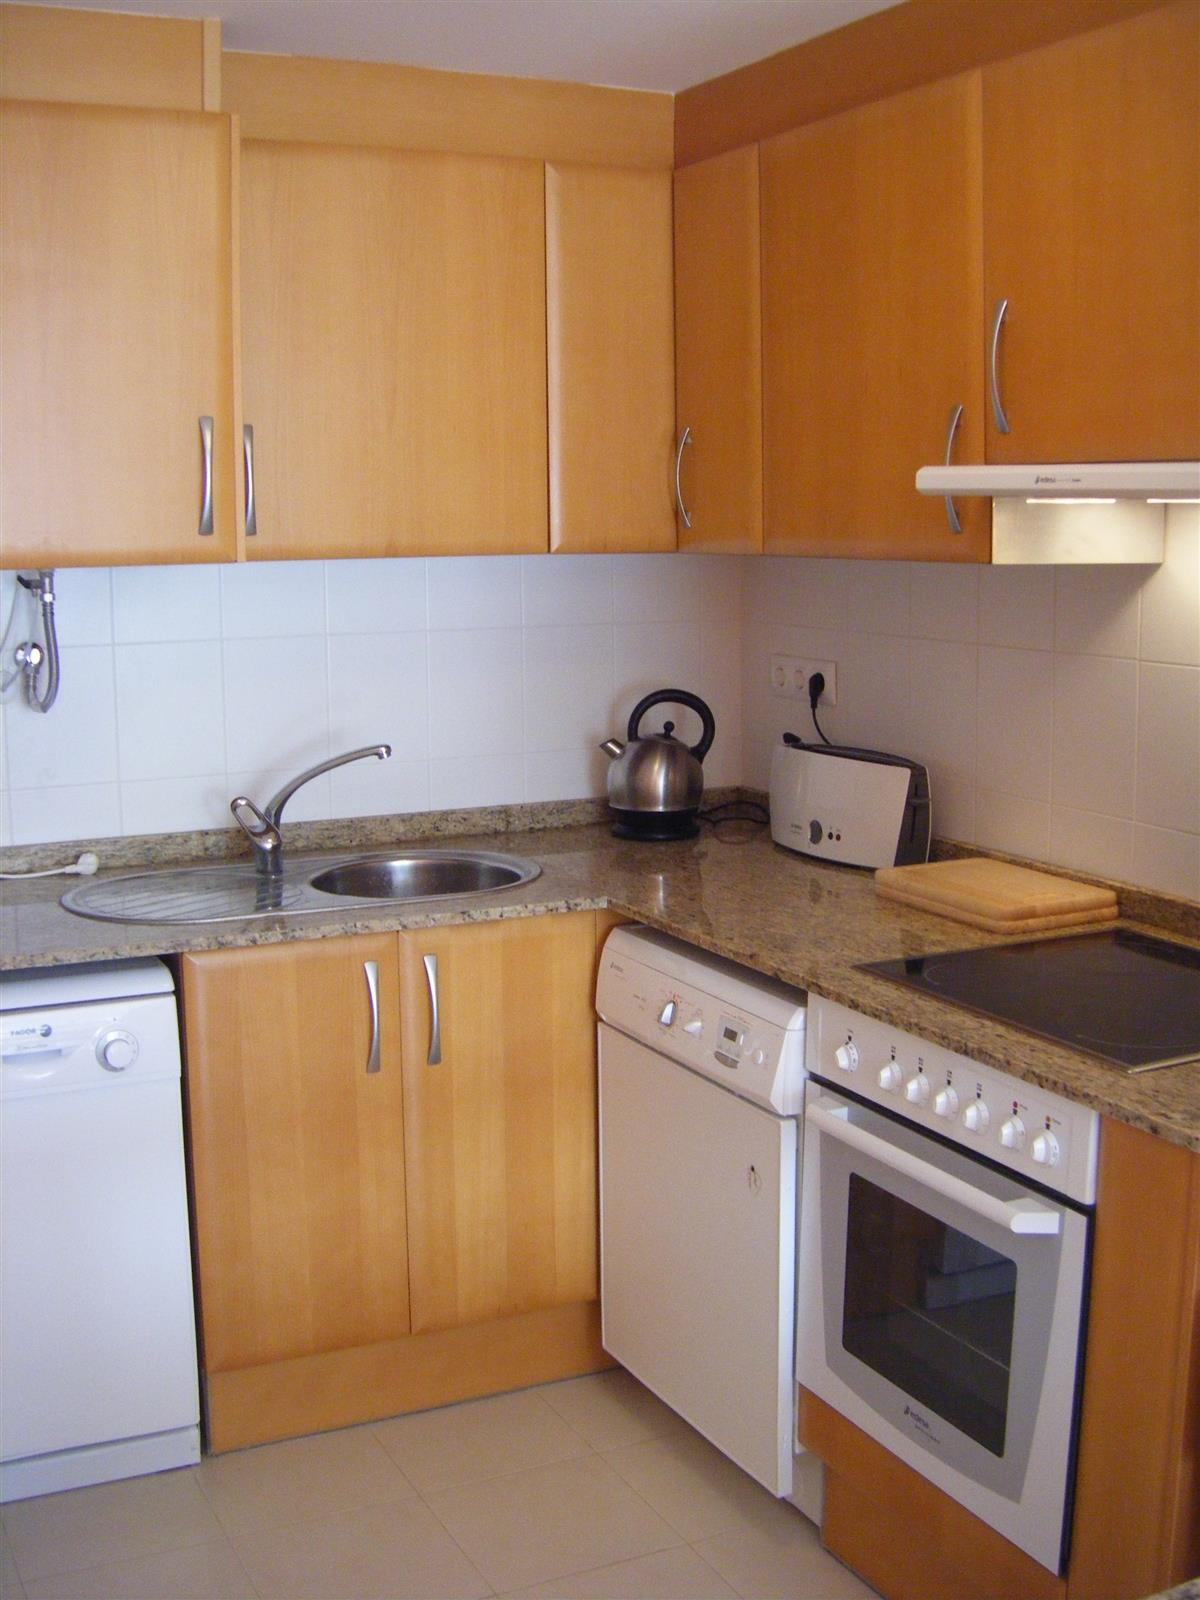 The kitchen with dishwasher, washingmachine, oven and ceramic hob.